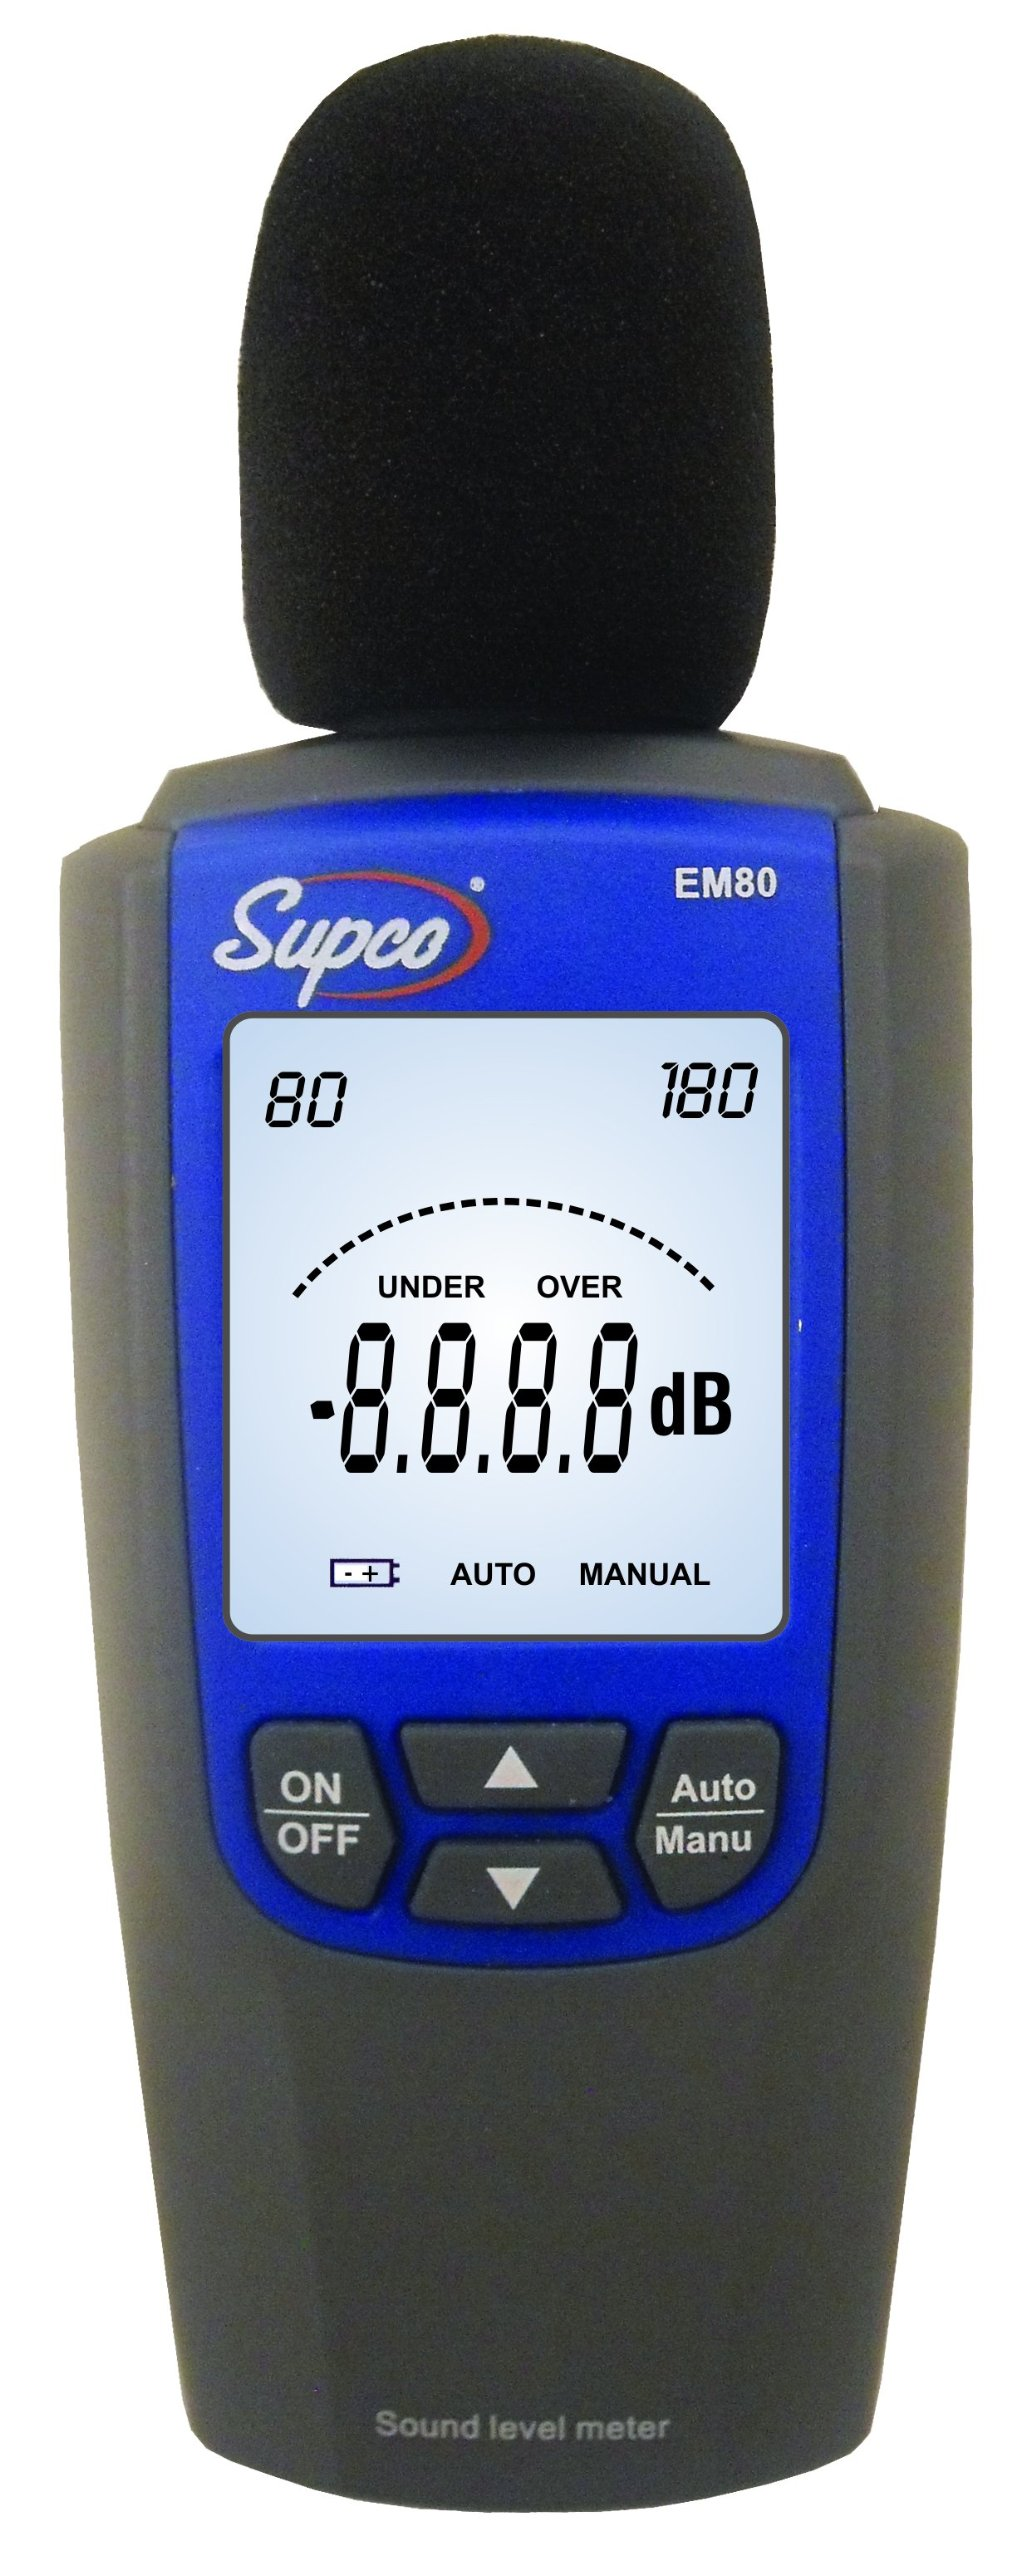 Supco EM80 Sound Level Meter, 2.4'' Length x 1.2'' Width x 6.1'' Height, 30 to 120dB, 1.5 dB Accuracy